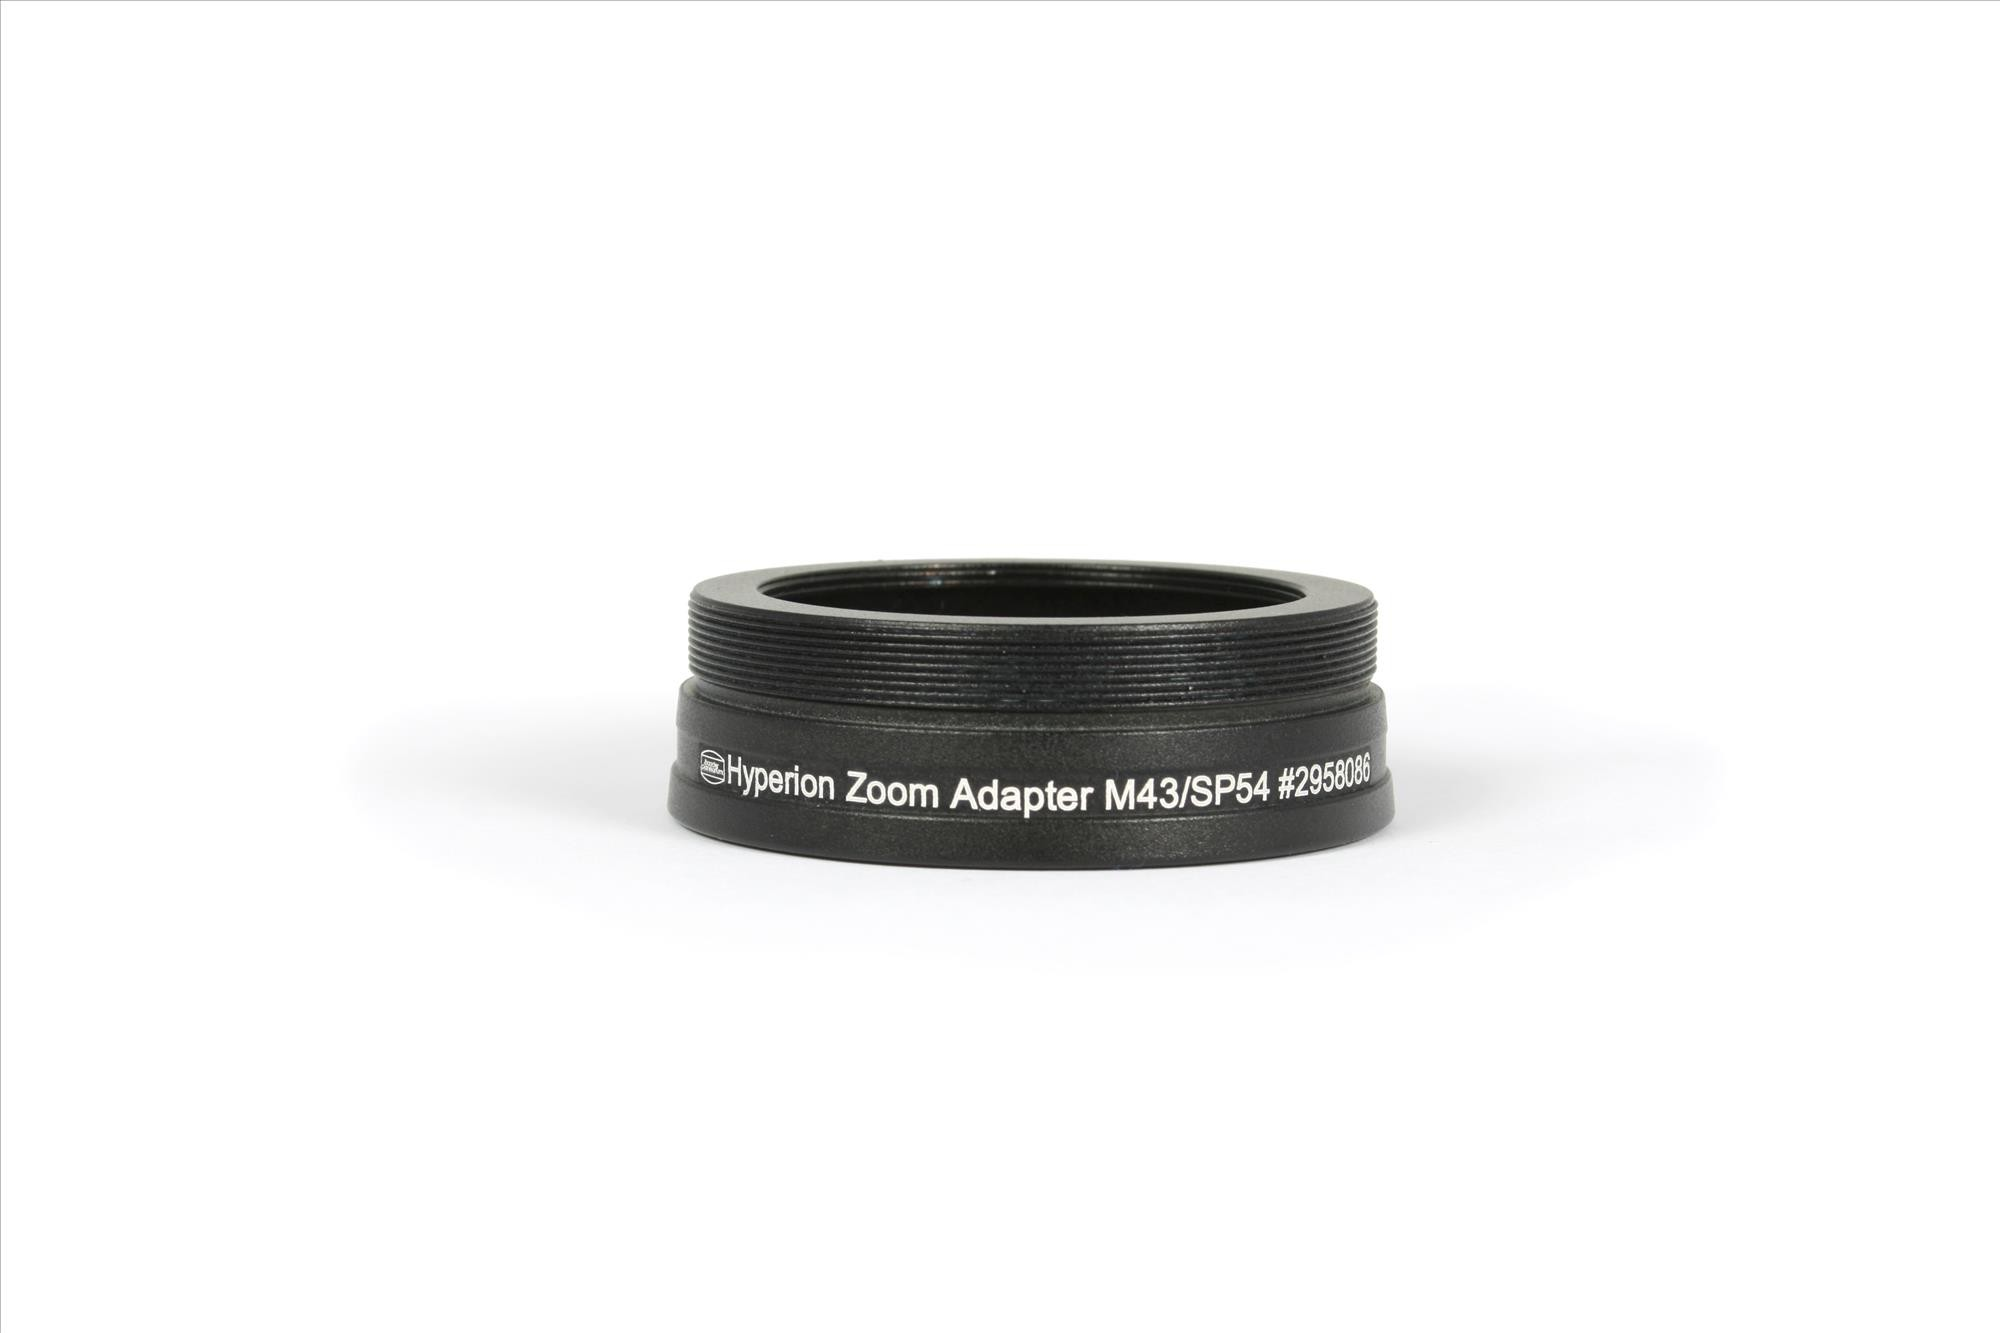 Baader Hyperion Zoom M43 / SP54 Adapter